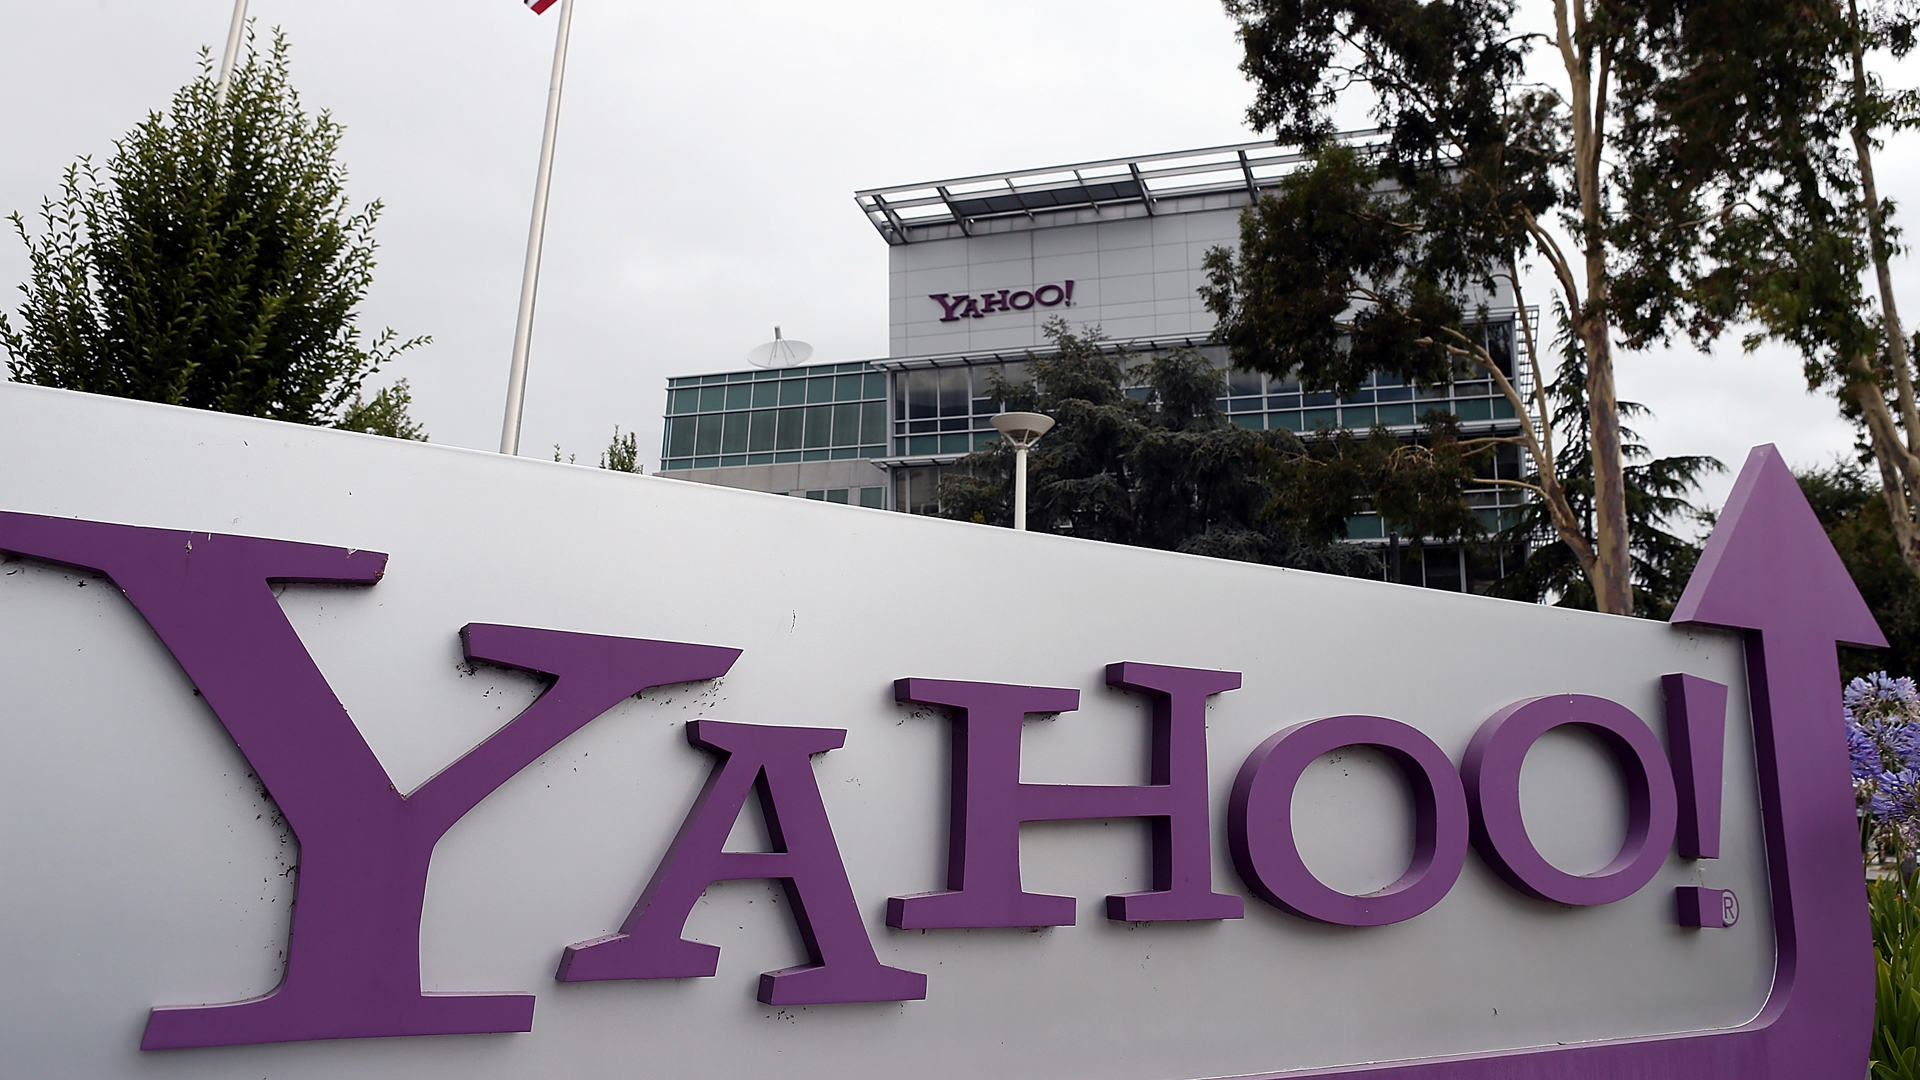 The Yahoo logo is displayed in front of the Yahoo headquarters on July 17, 2012, in Sunnyvale, California. (Credit: Justin Sullivan/Getty Images)